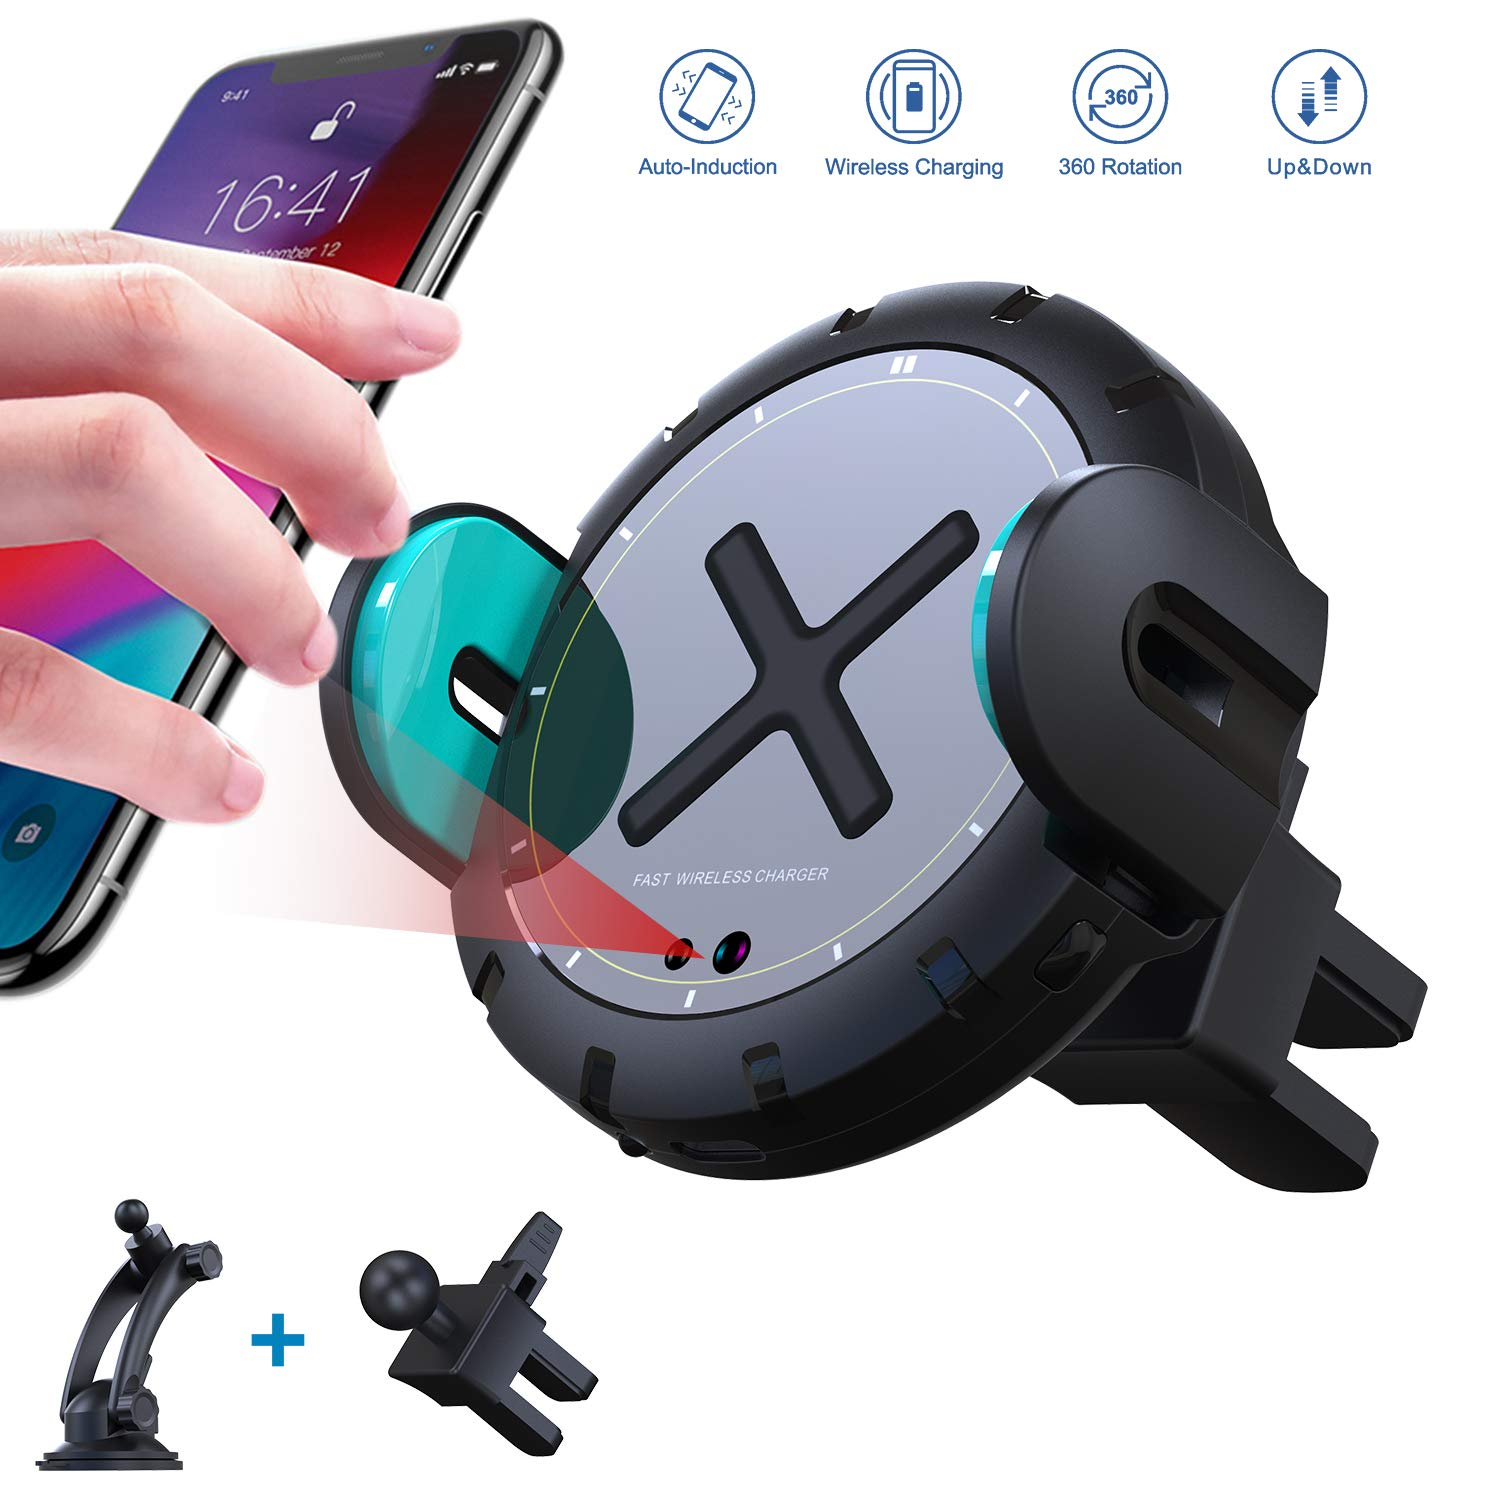 KOAKUMA Auto-Clamping QI Fast Charging Car Phone Mount 360 Rotating Dashboard Air Vent Phone Holder Compatible iPhone XS Max//XS//XR//X//8//8 Plus Wireless Car Charger Mount Samsung S10//S10+//S9//S9+//Note9